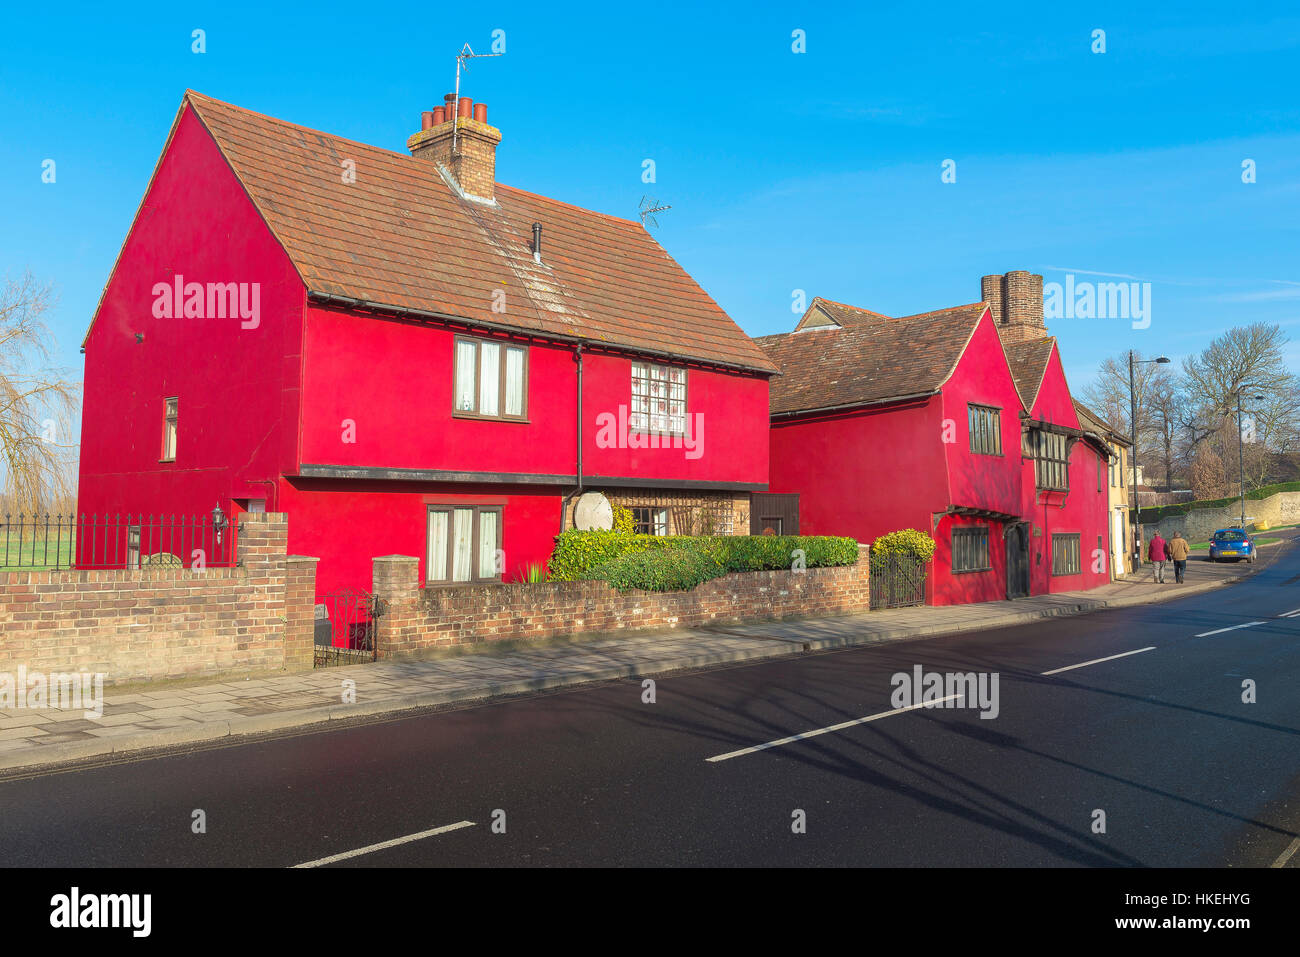 A medieval town house painted red in Sudbury Suffolk, UK. - Stock Image